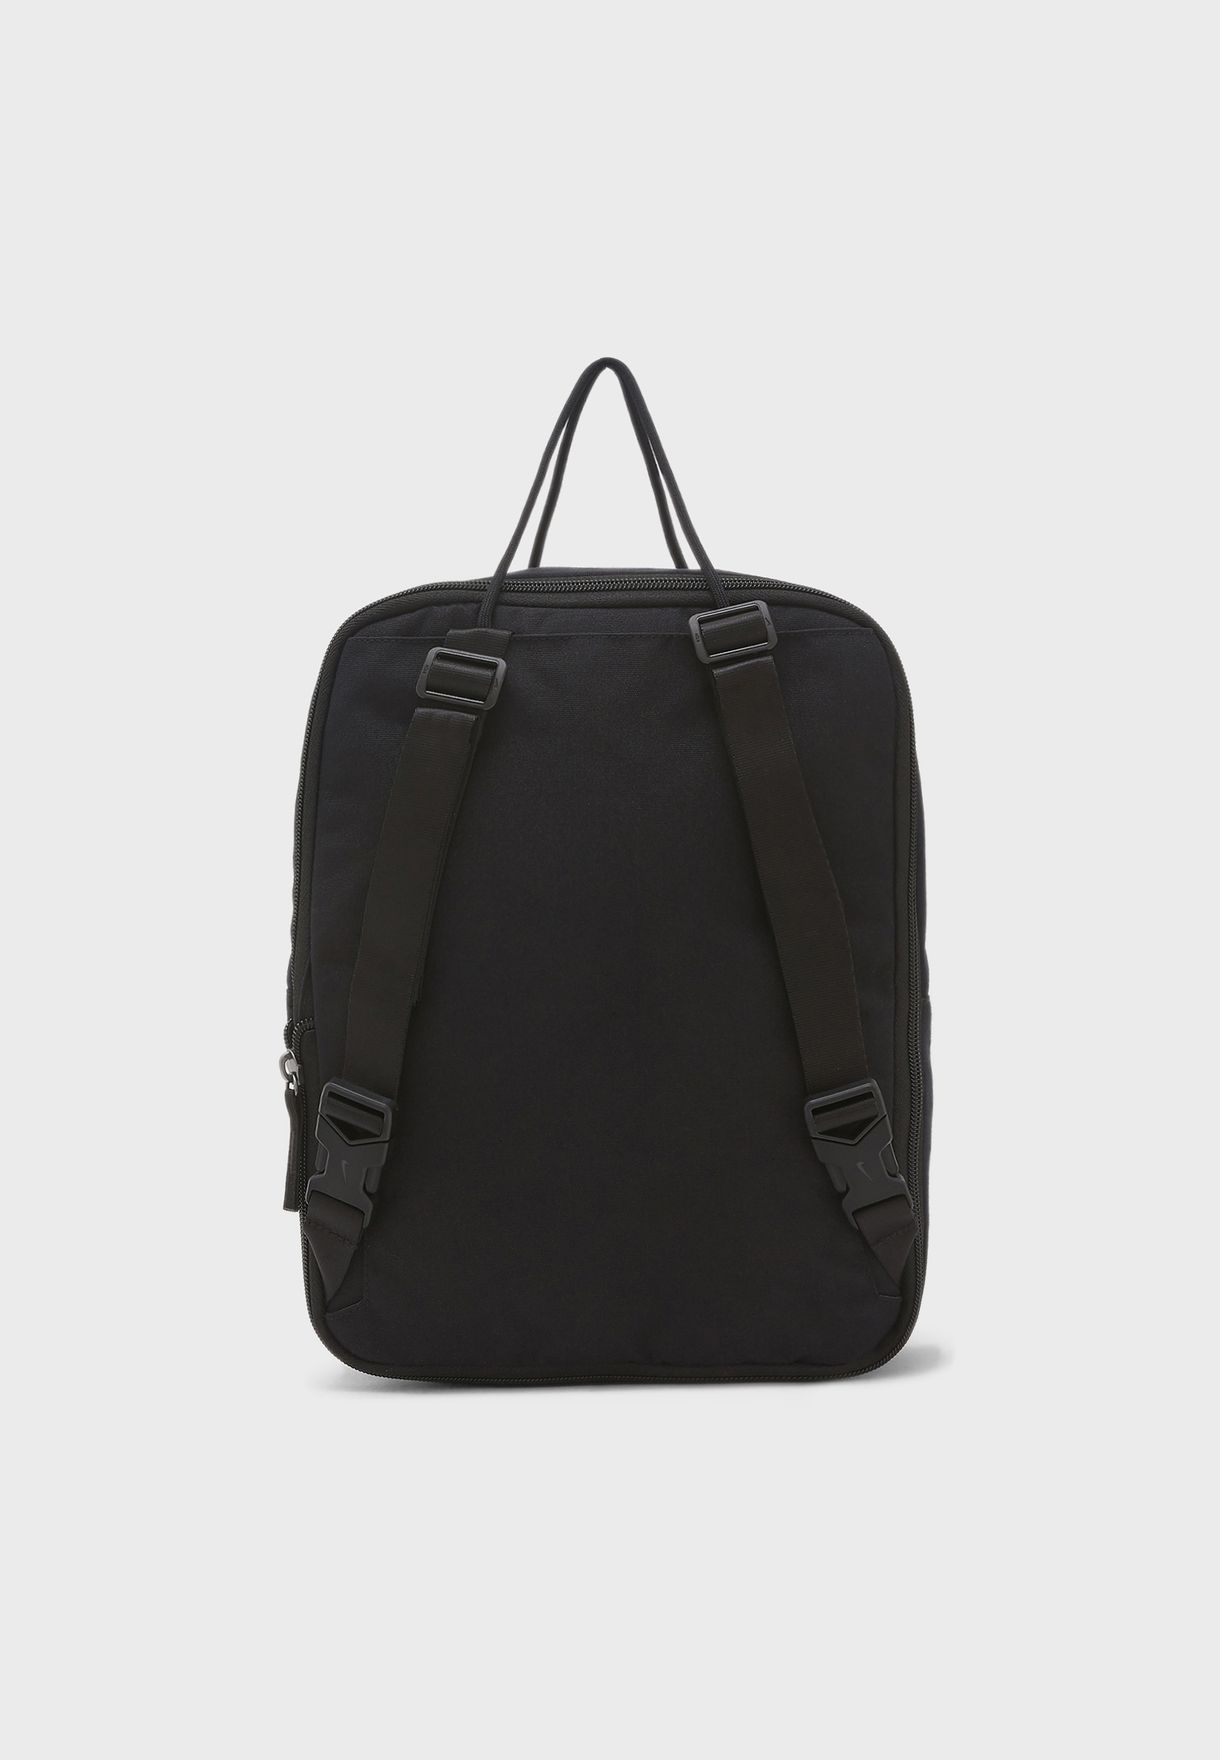 Tanjun Backpack